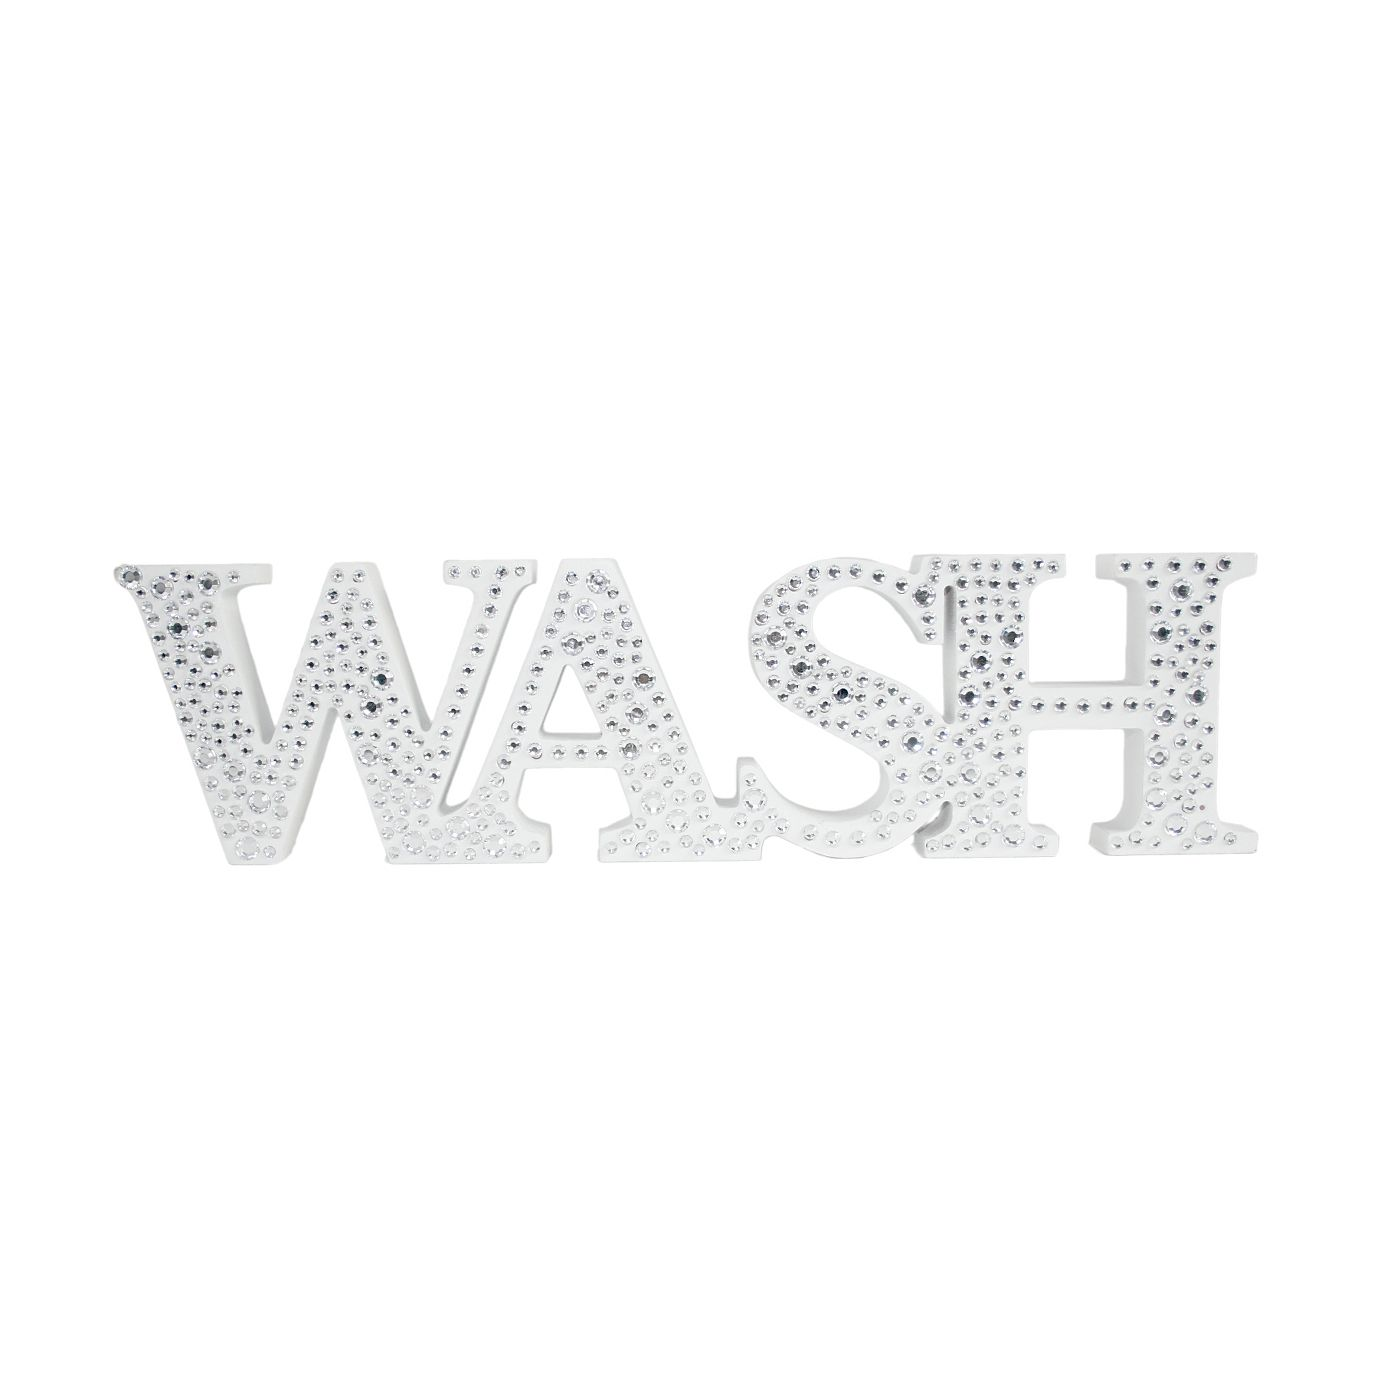 George Home Wash Words White | Monochrome | ASDA direct | ♥ Splish ...